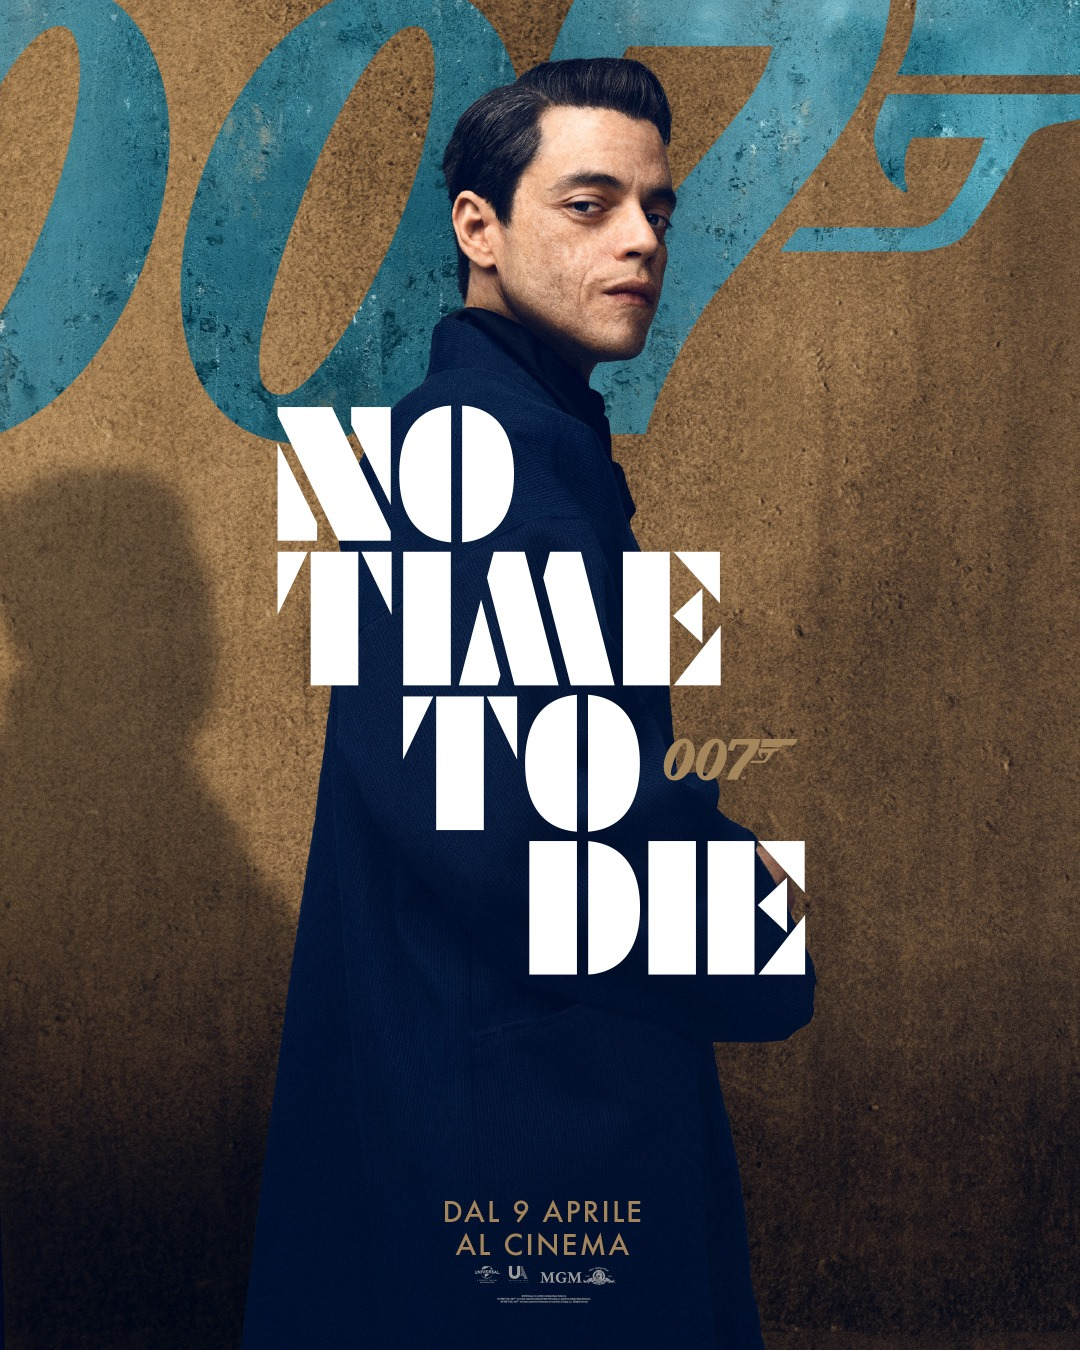 Rami Malek - No Time to Die